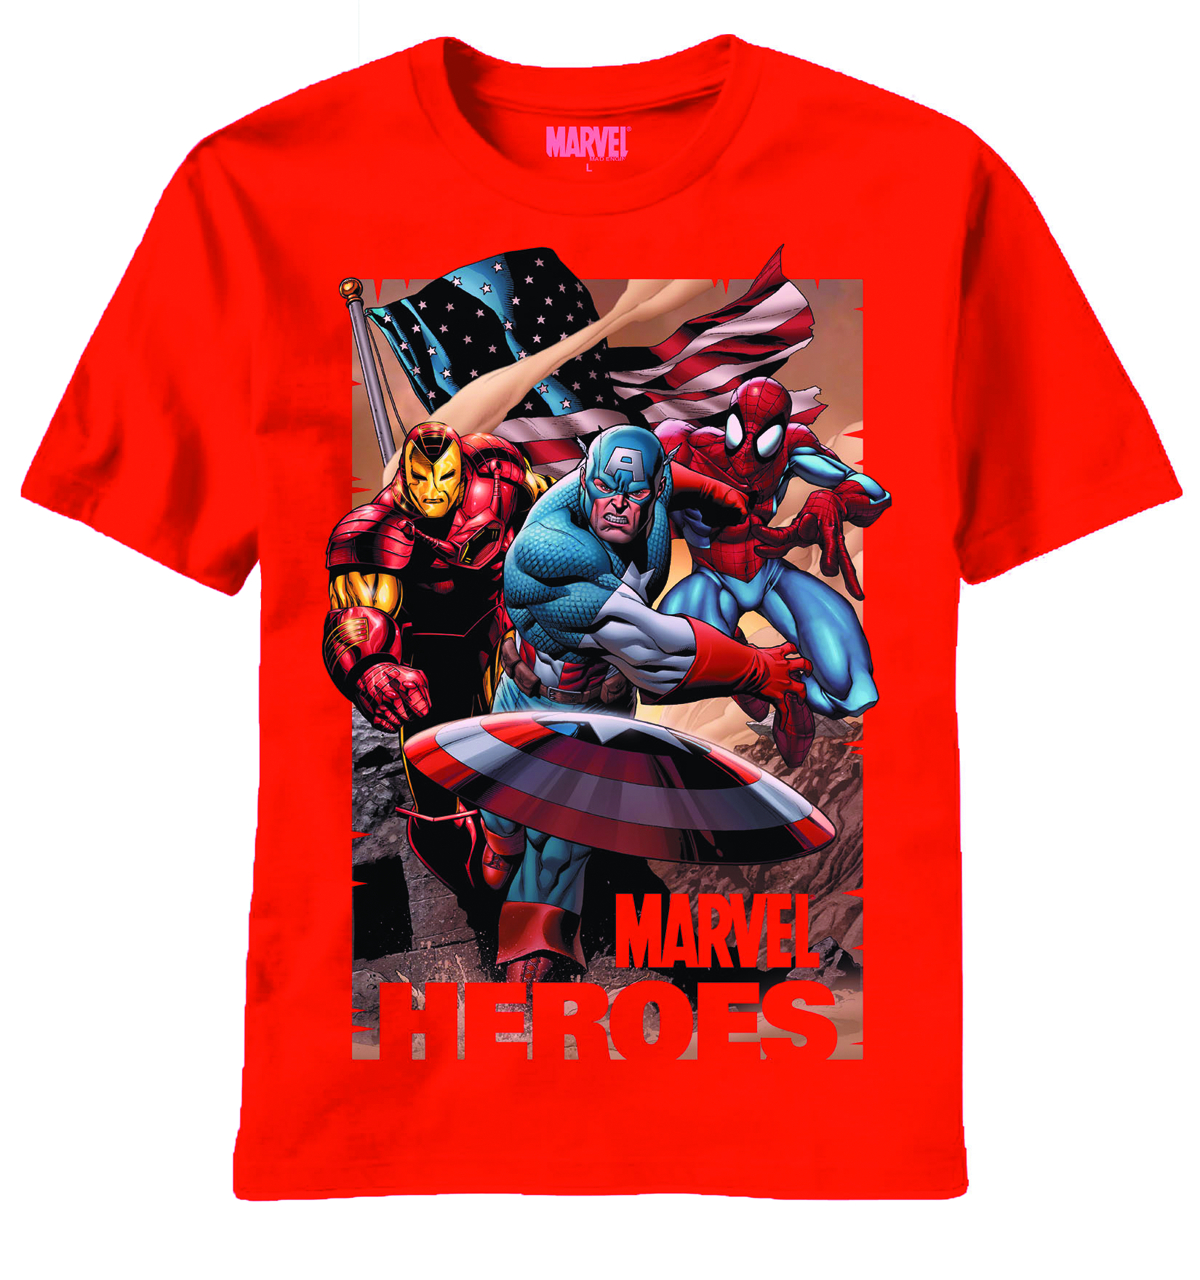 MARVEL HEROES TRES AMERICANOS RED T/S LG